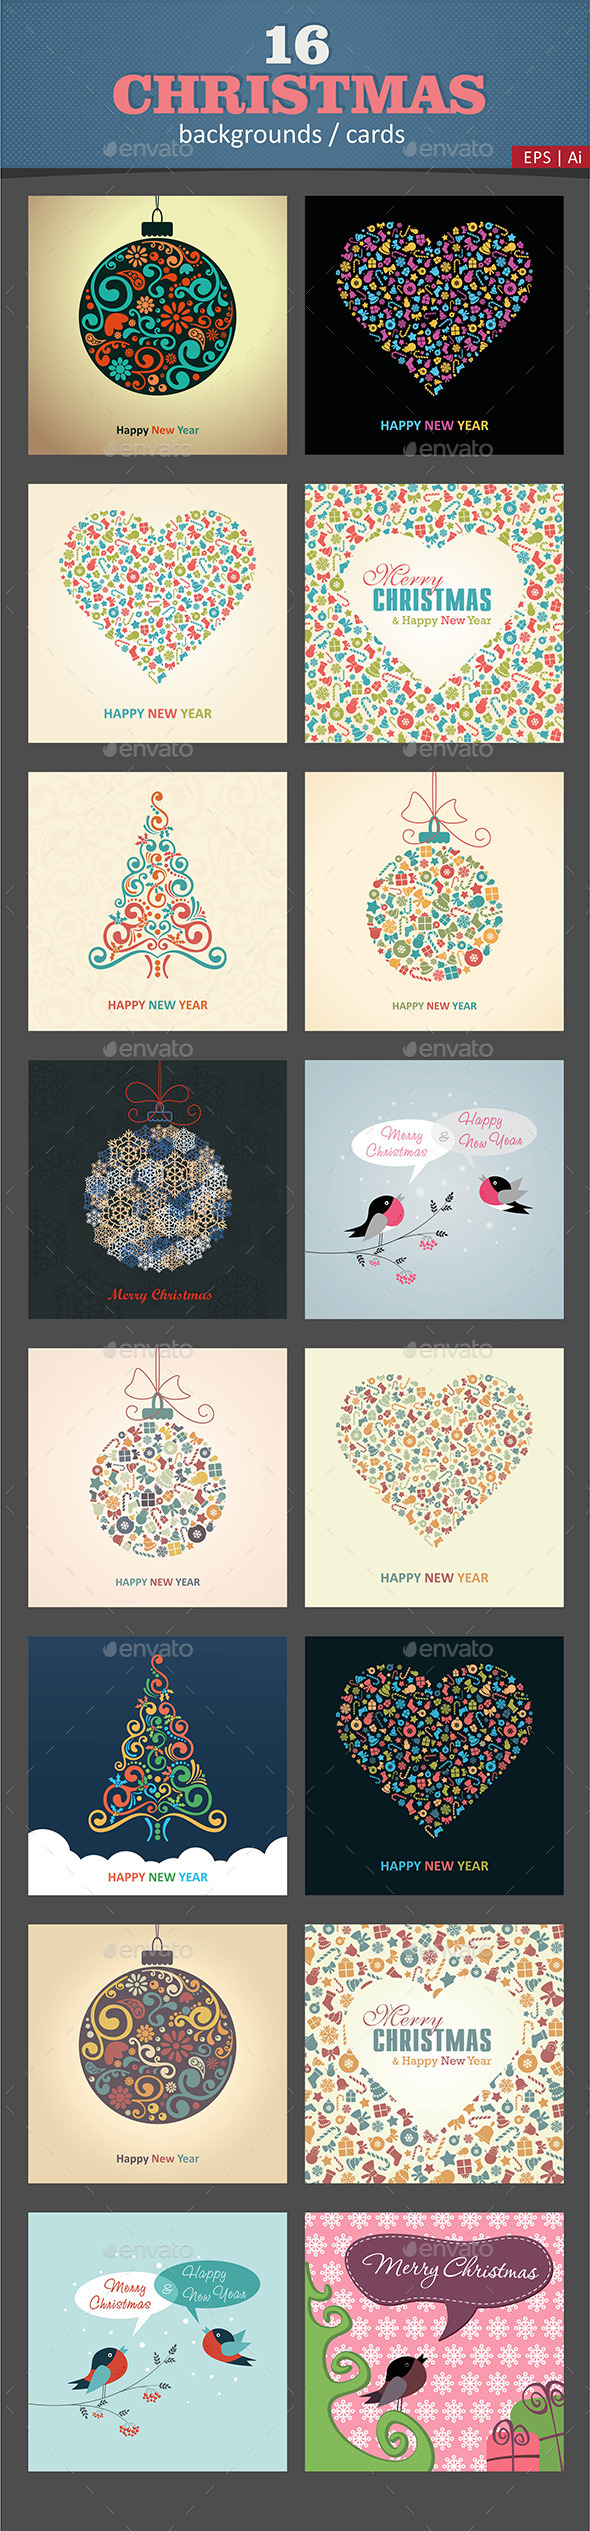 GraphicRiver 16 Christmas Cards Backgrounds Vector 9512248